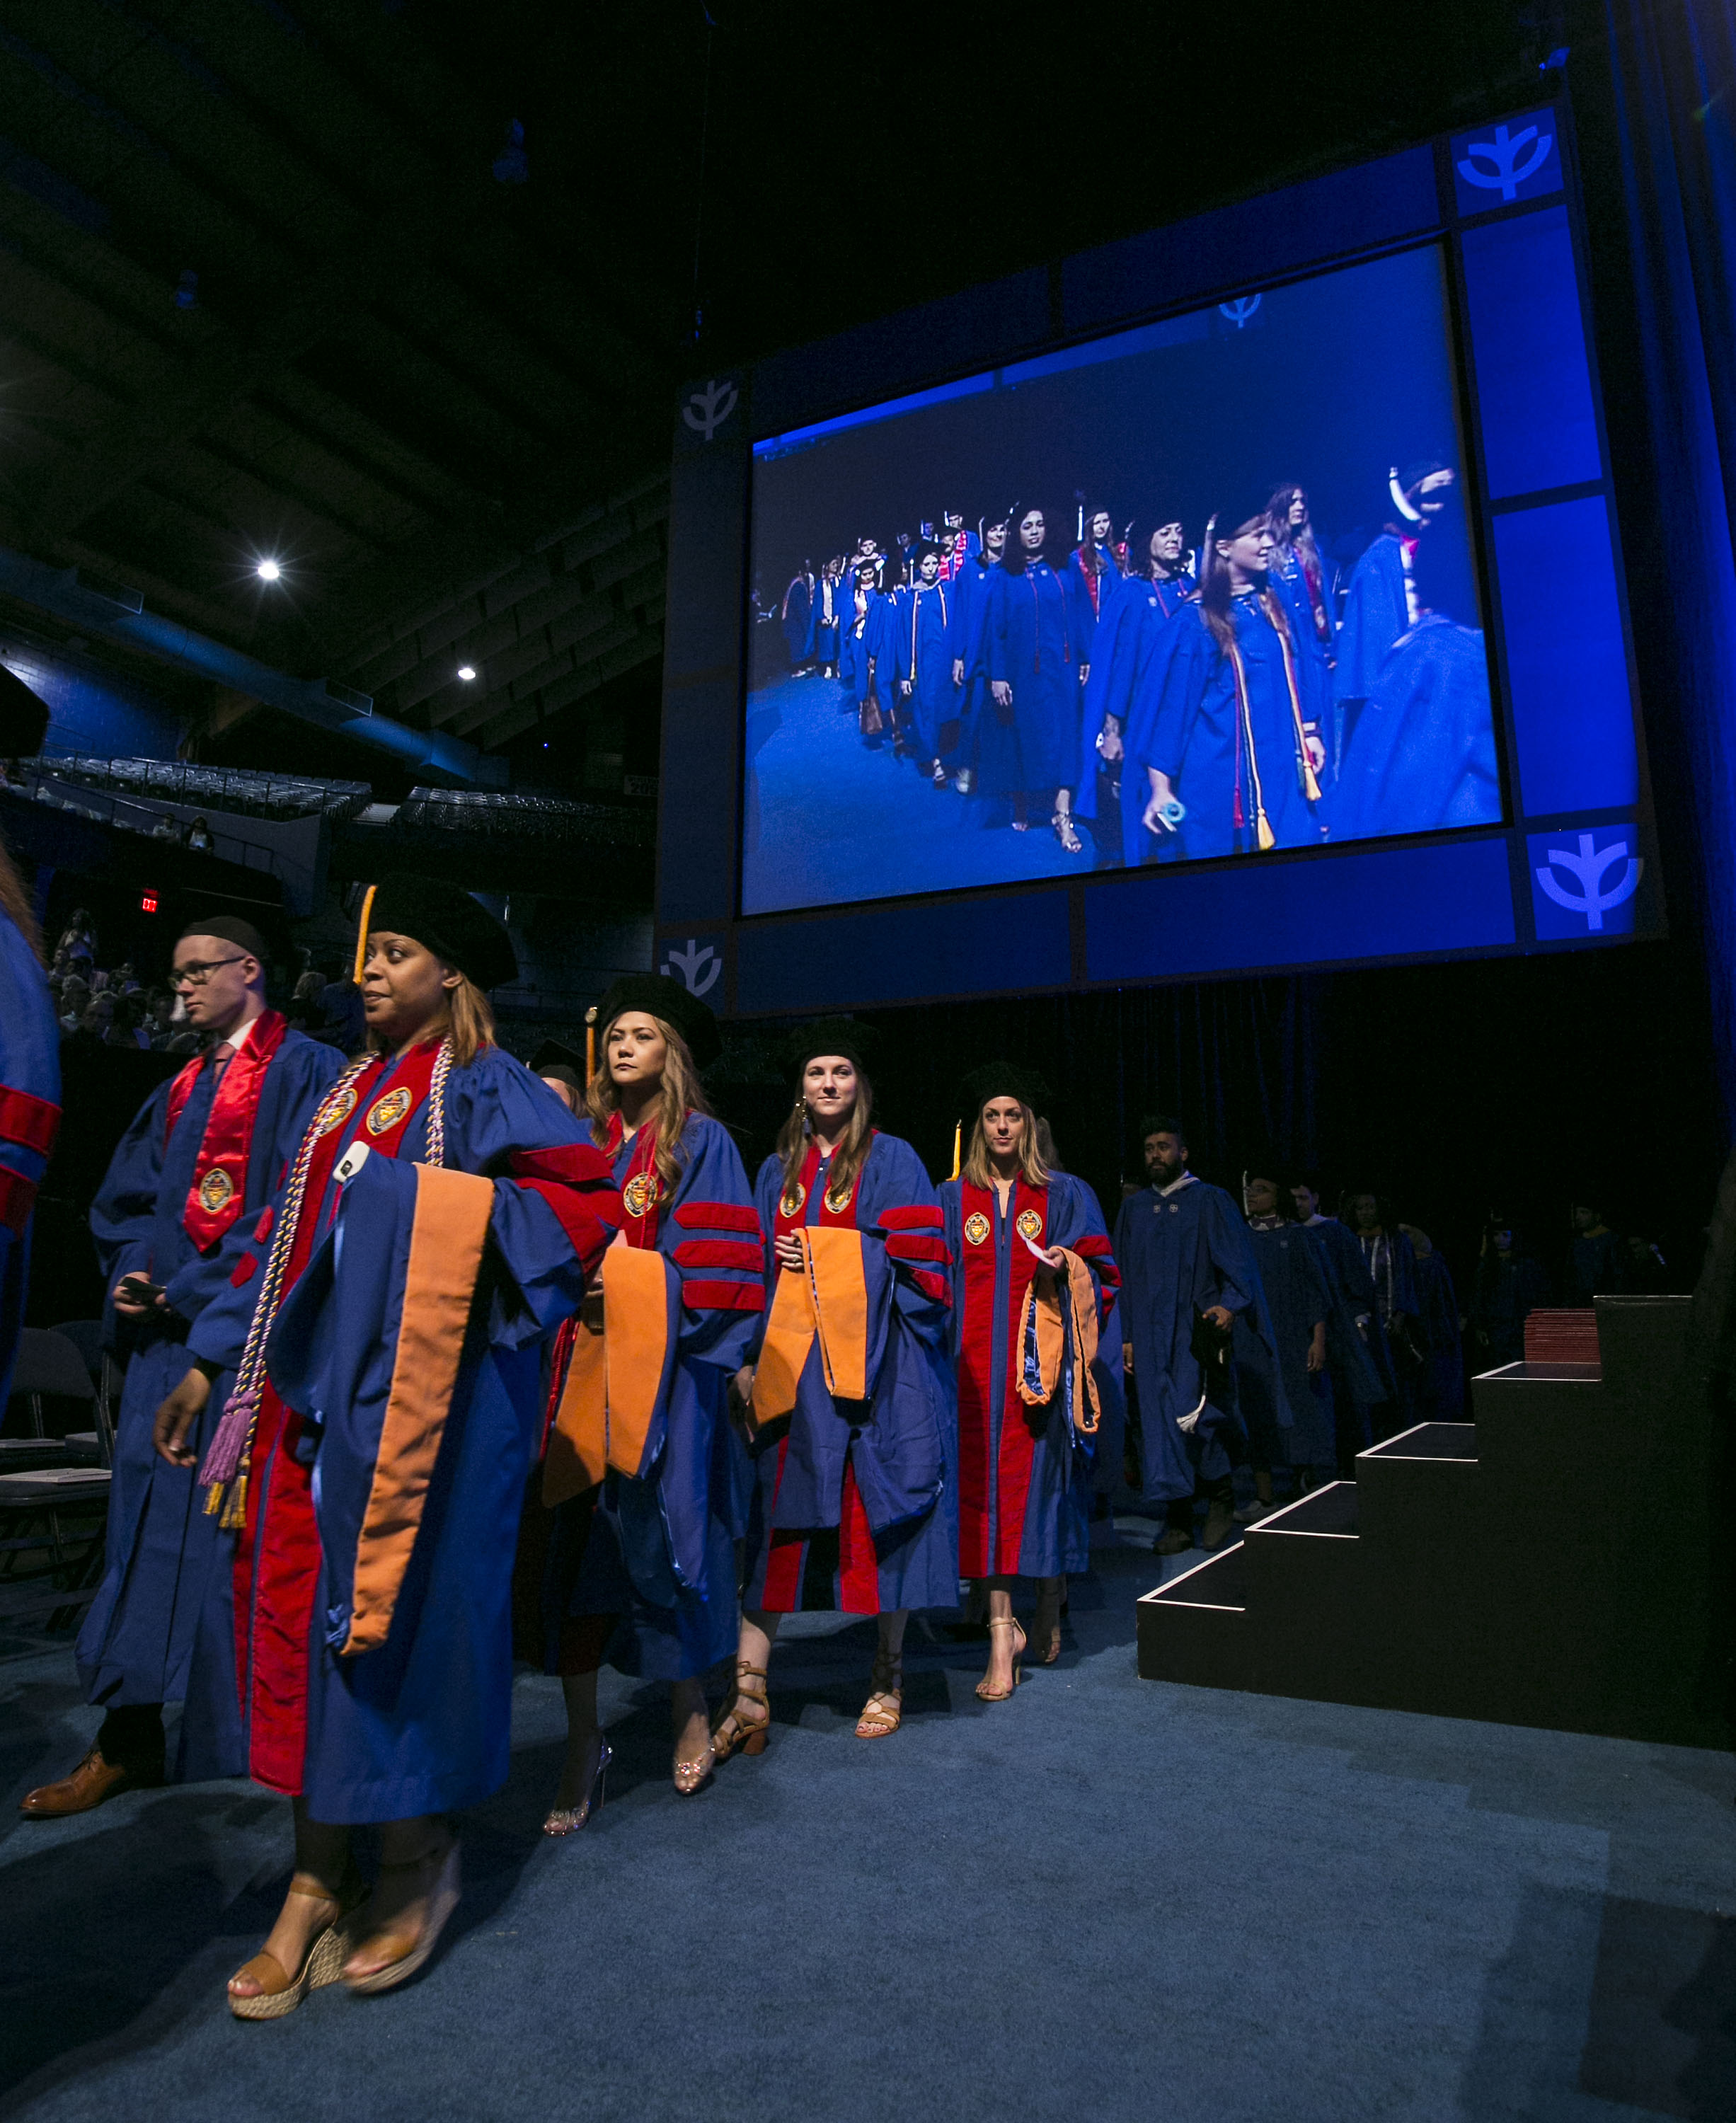 Students make their way into the Allstate Arena Sunday, June 11, 2017, for the DePaul University College of Science and Health and College of Liberal Arts and Social Sciences commencement ceremony in Rosemont, IL. (DePaul University/Jamie Moncrief)